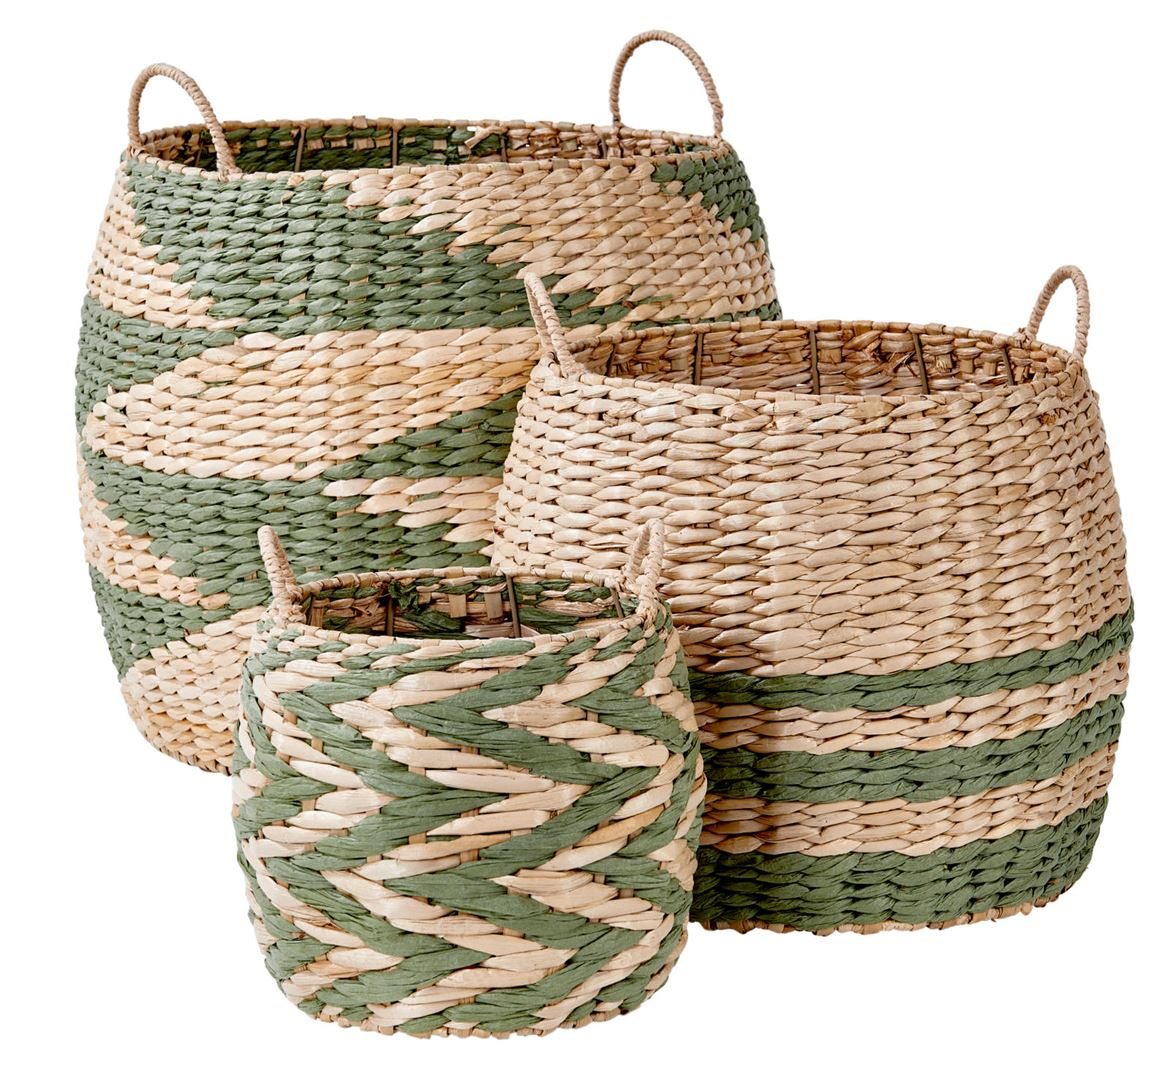 INDIAN GREEN Panier vert, naturel H 19 cm; Ø 23 cm_indian-green-panier-vert,-naturel-h-19-cm;-ø-23-cm